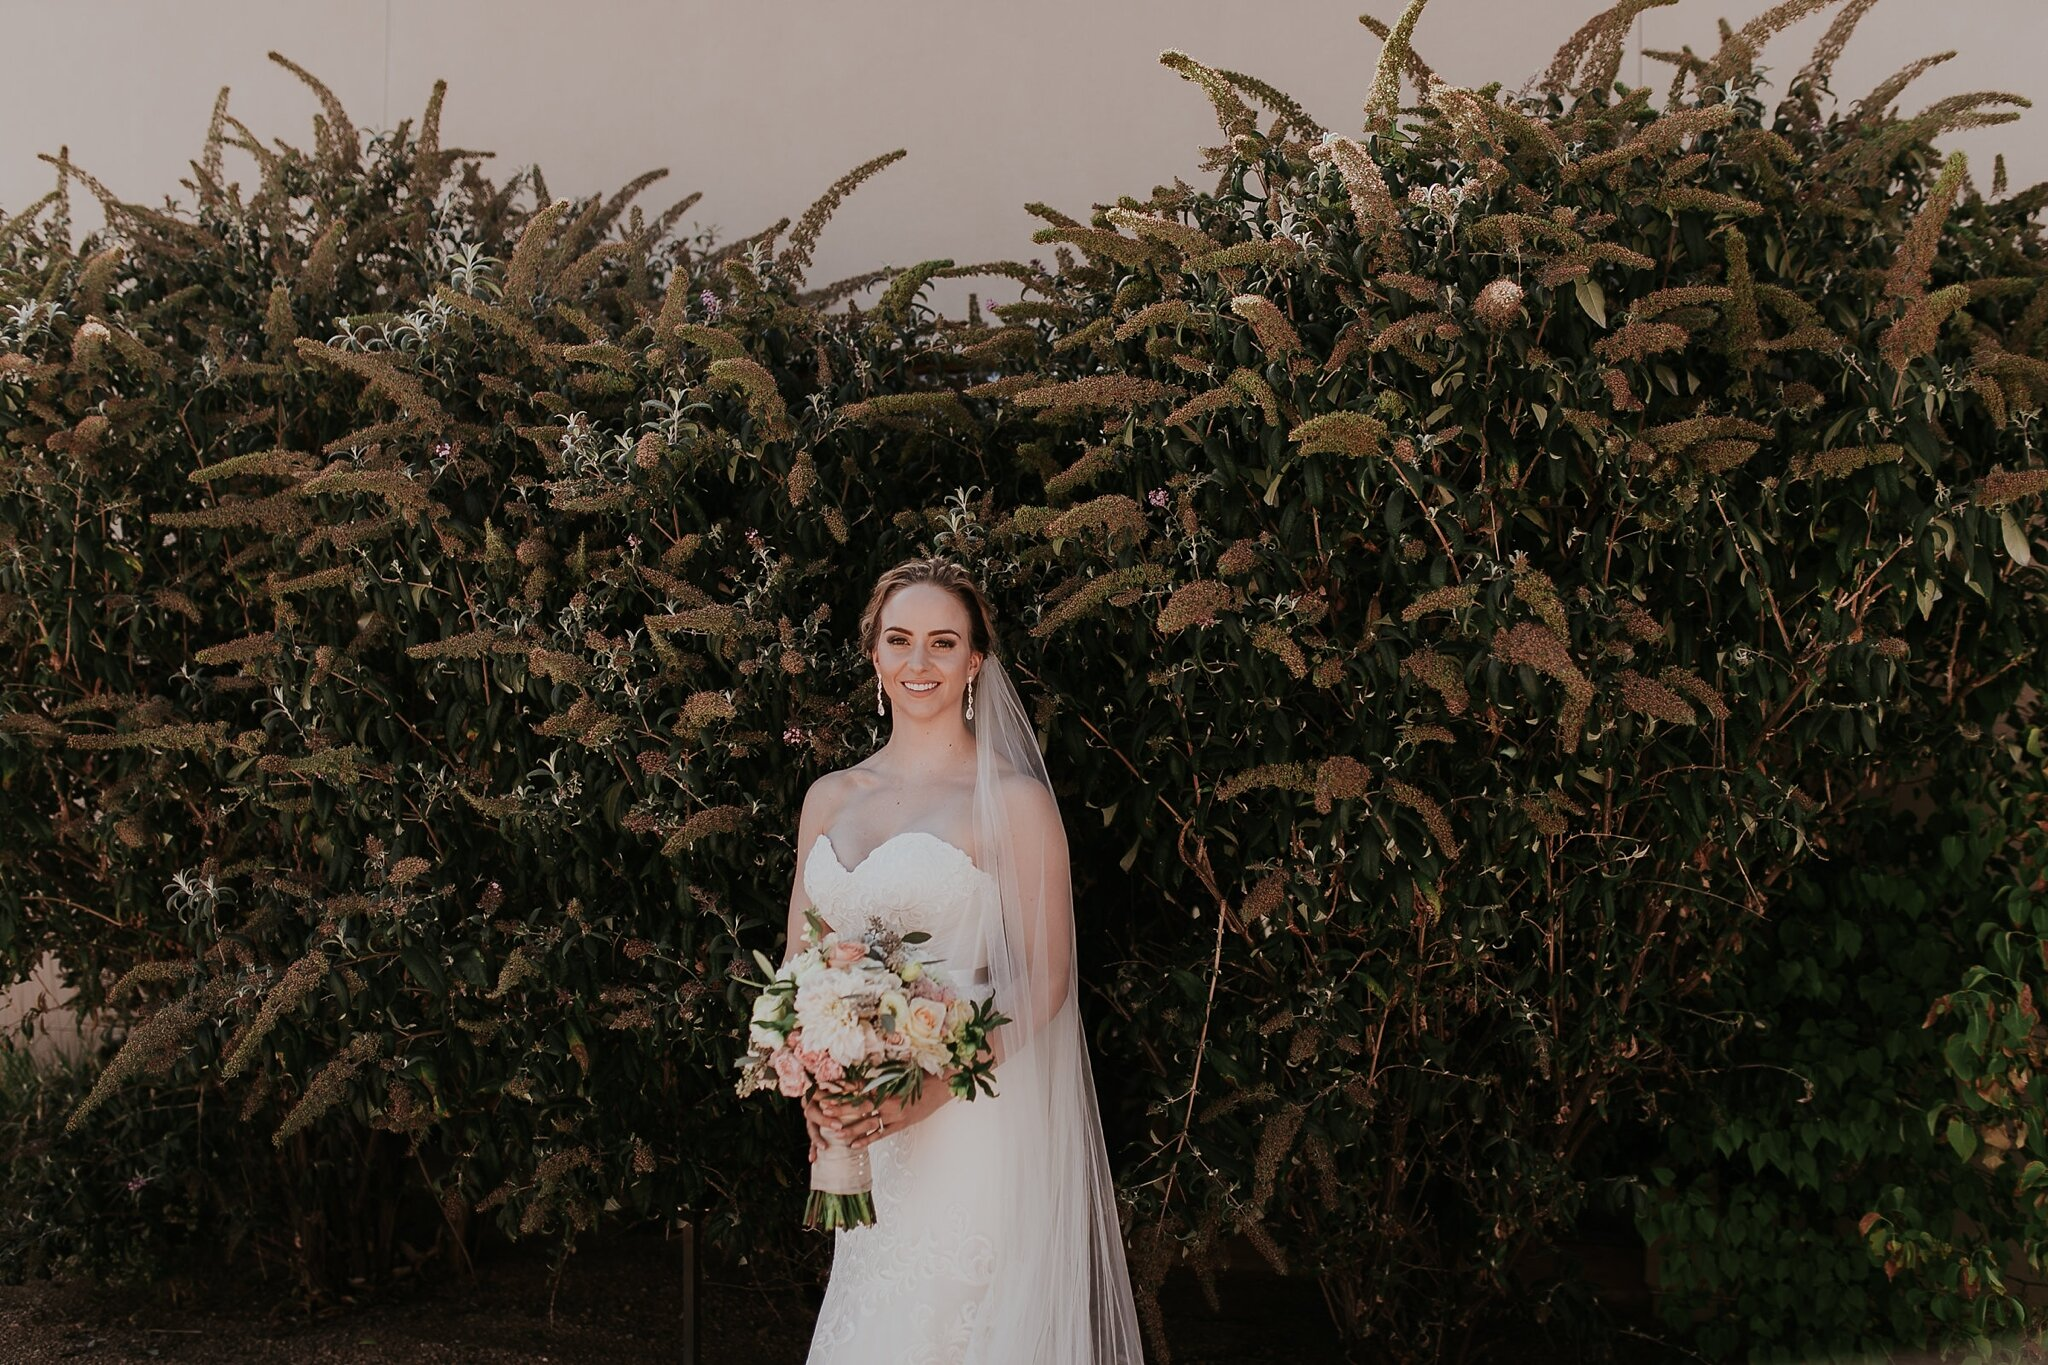 Alicia+lucia+photography+-+albuquerque+wedding+photographer+-+santa+fe+wedding+photography+-+new+mexico+wedding+photographer+-+new+mexico+wedding+-+wedding+venue+-+new+mexico+wedding+venue+-+four+seasons+wedding+-+four+seasons+santa+fe_0066.jpg